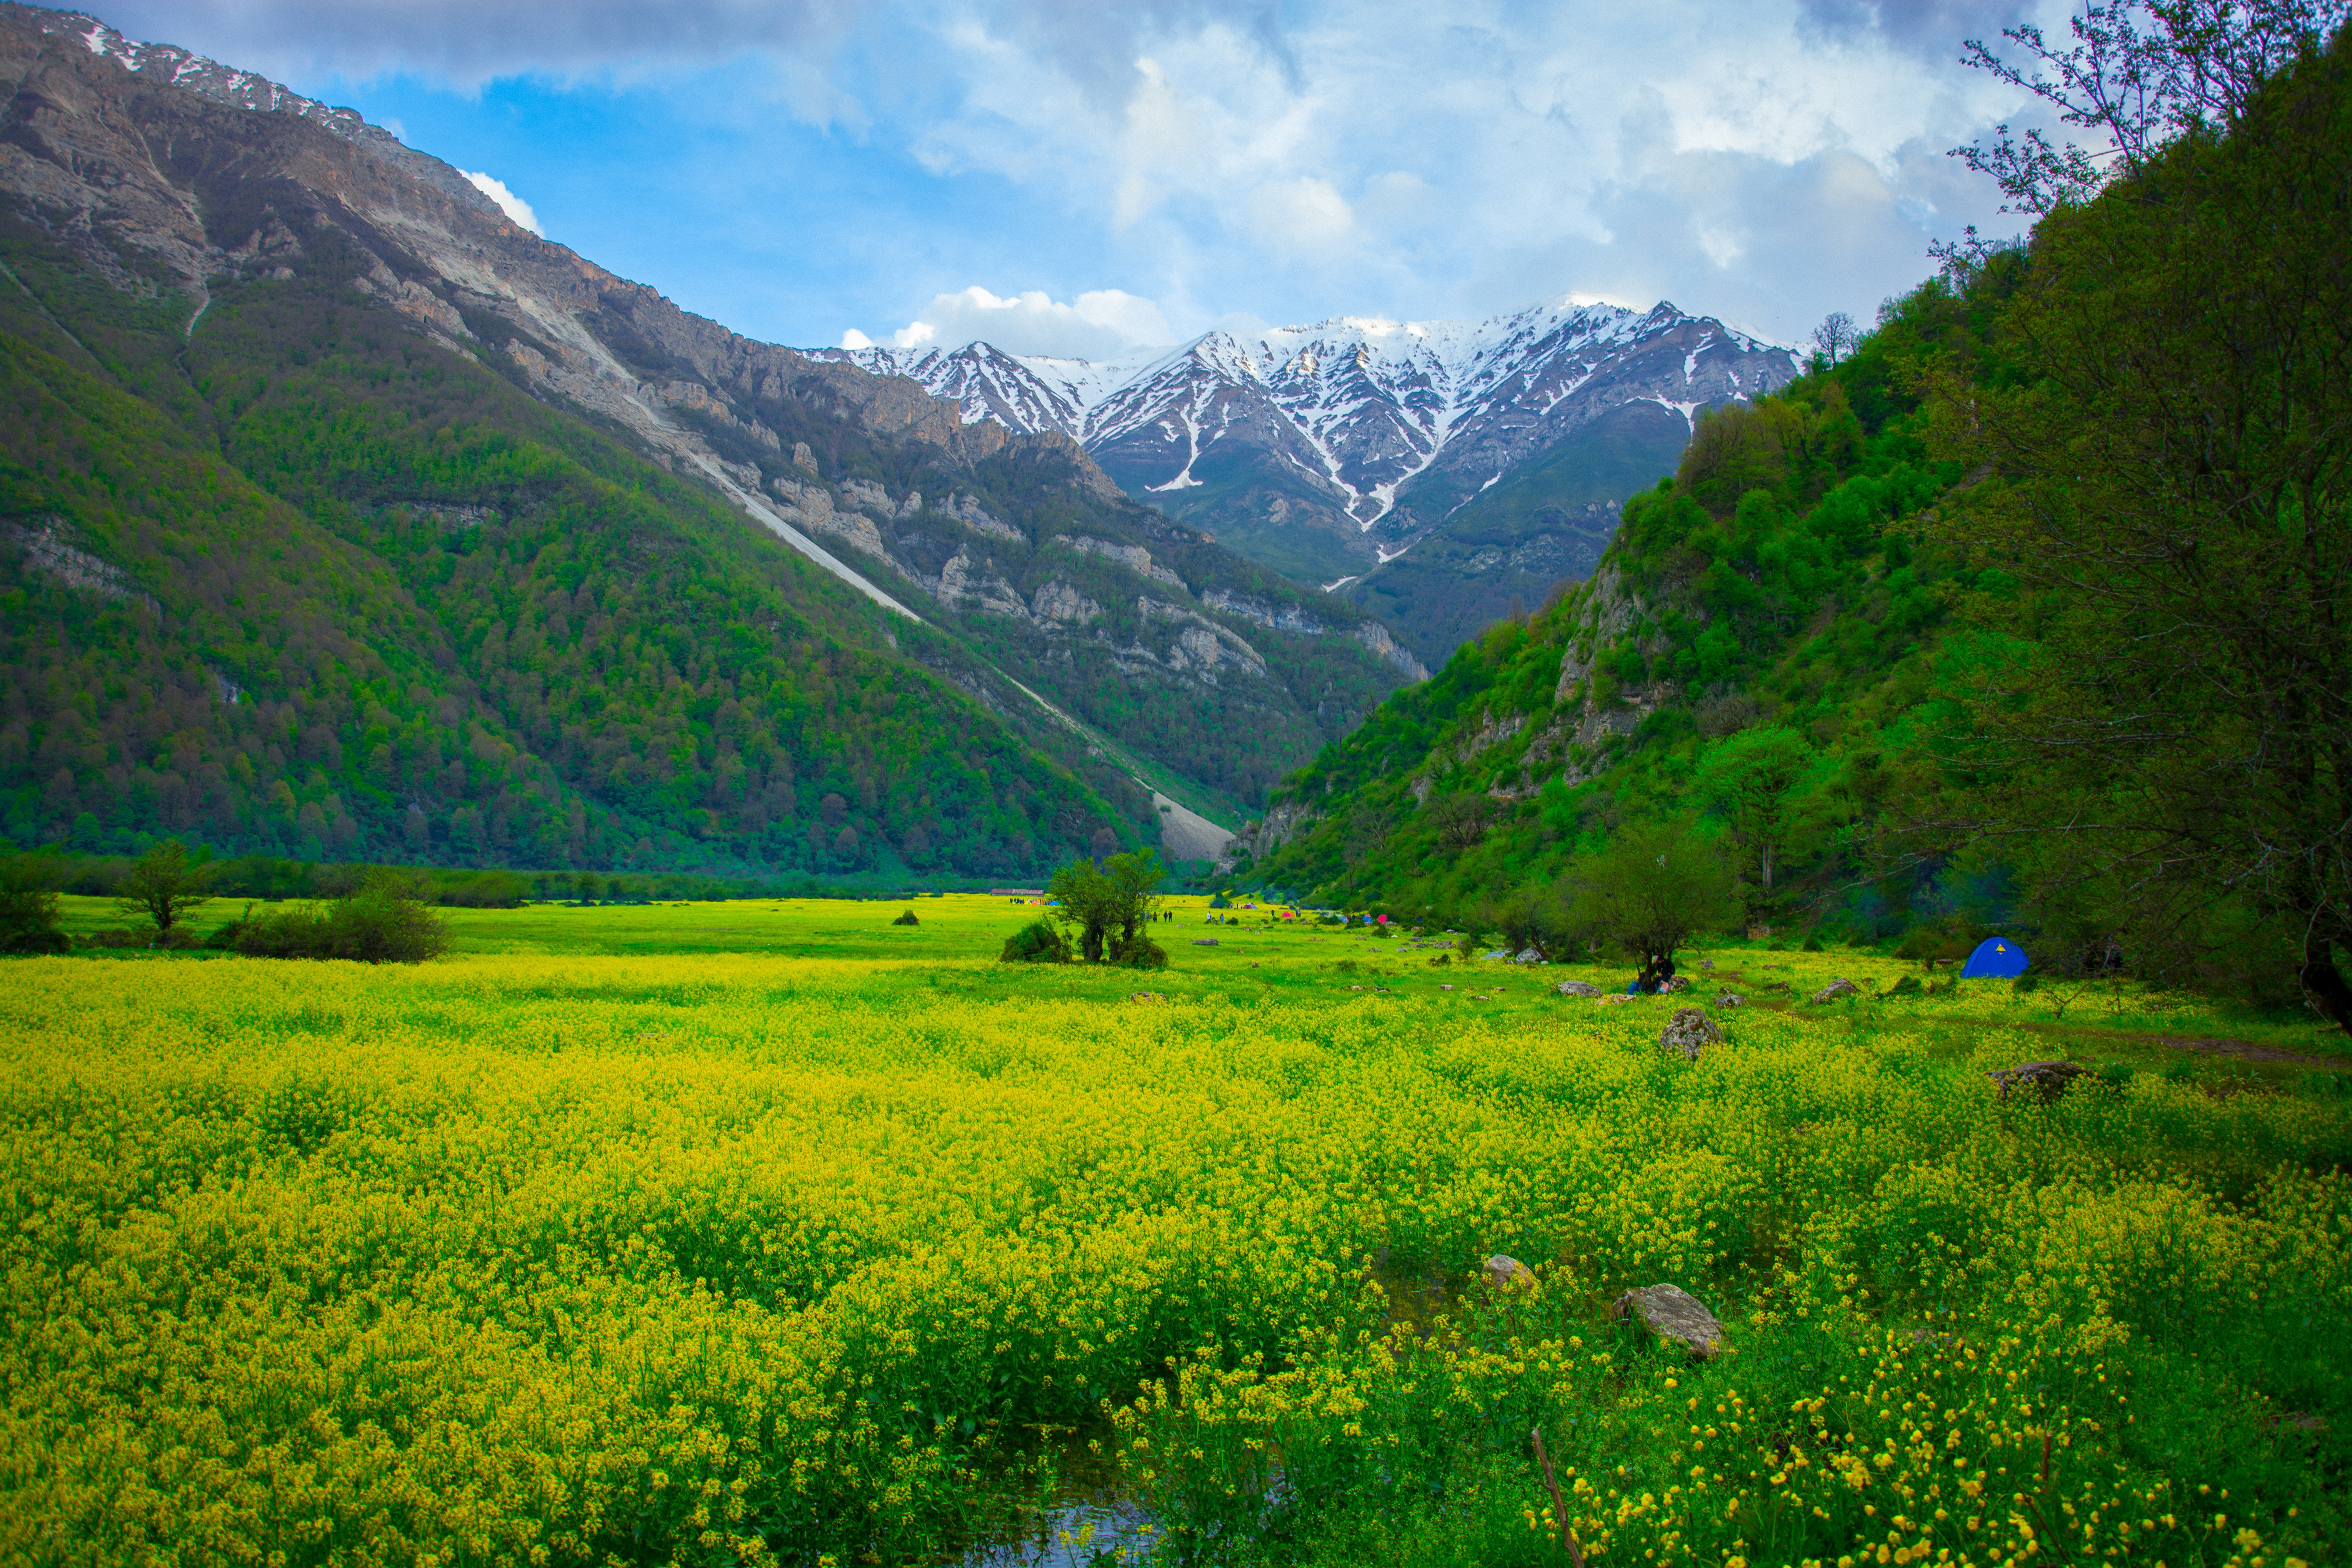 149520 download wallpaper Nature, Polyana, Glade, Mountains, Landscape, Flowers screensavers and pictures for free